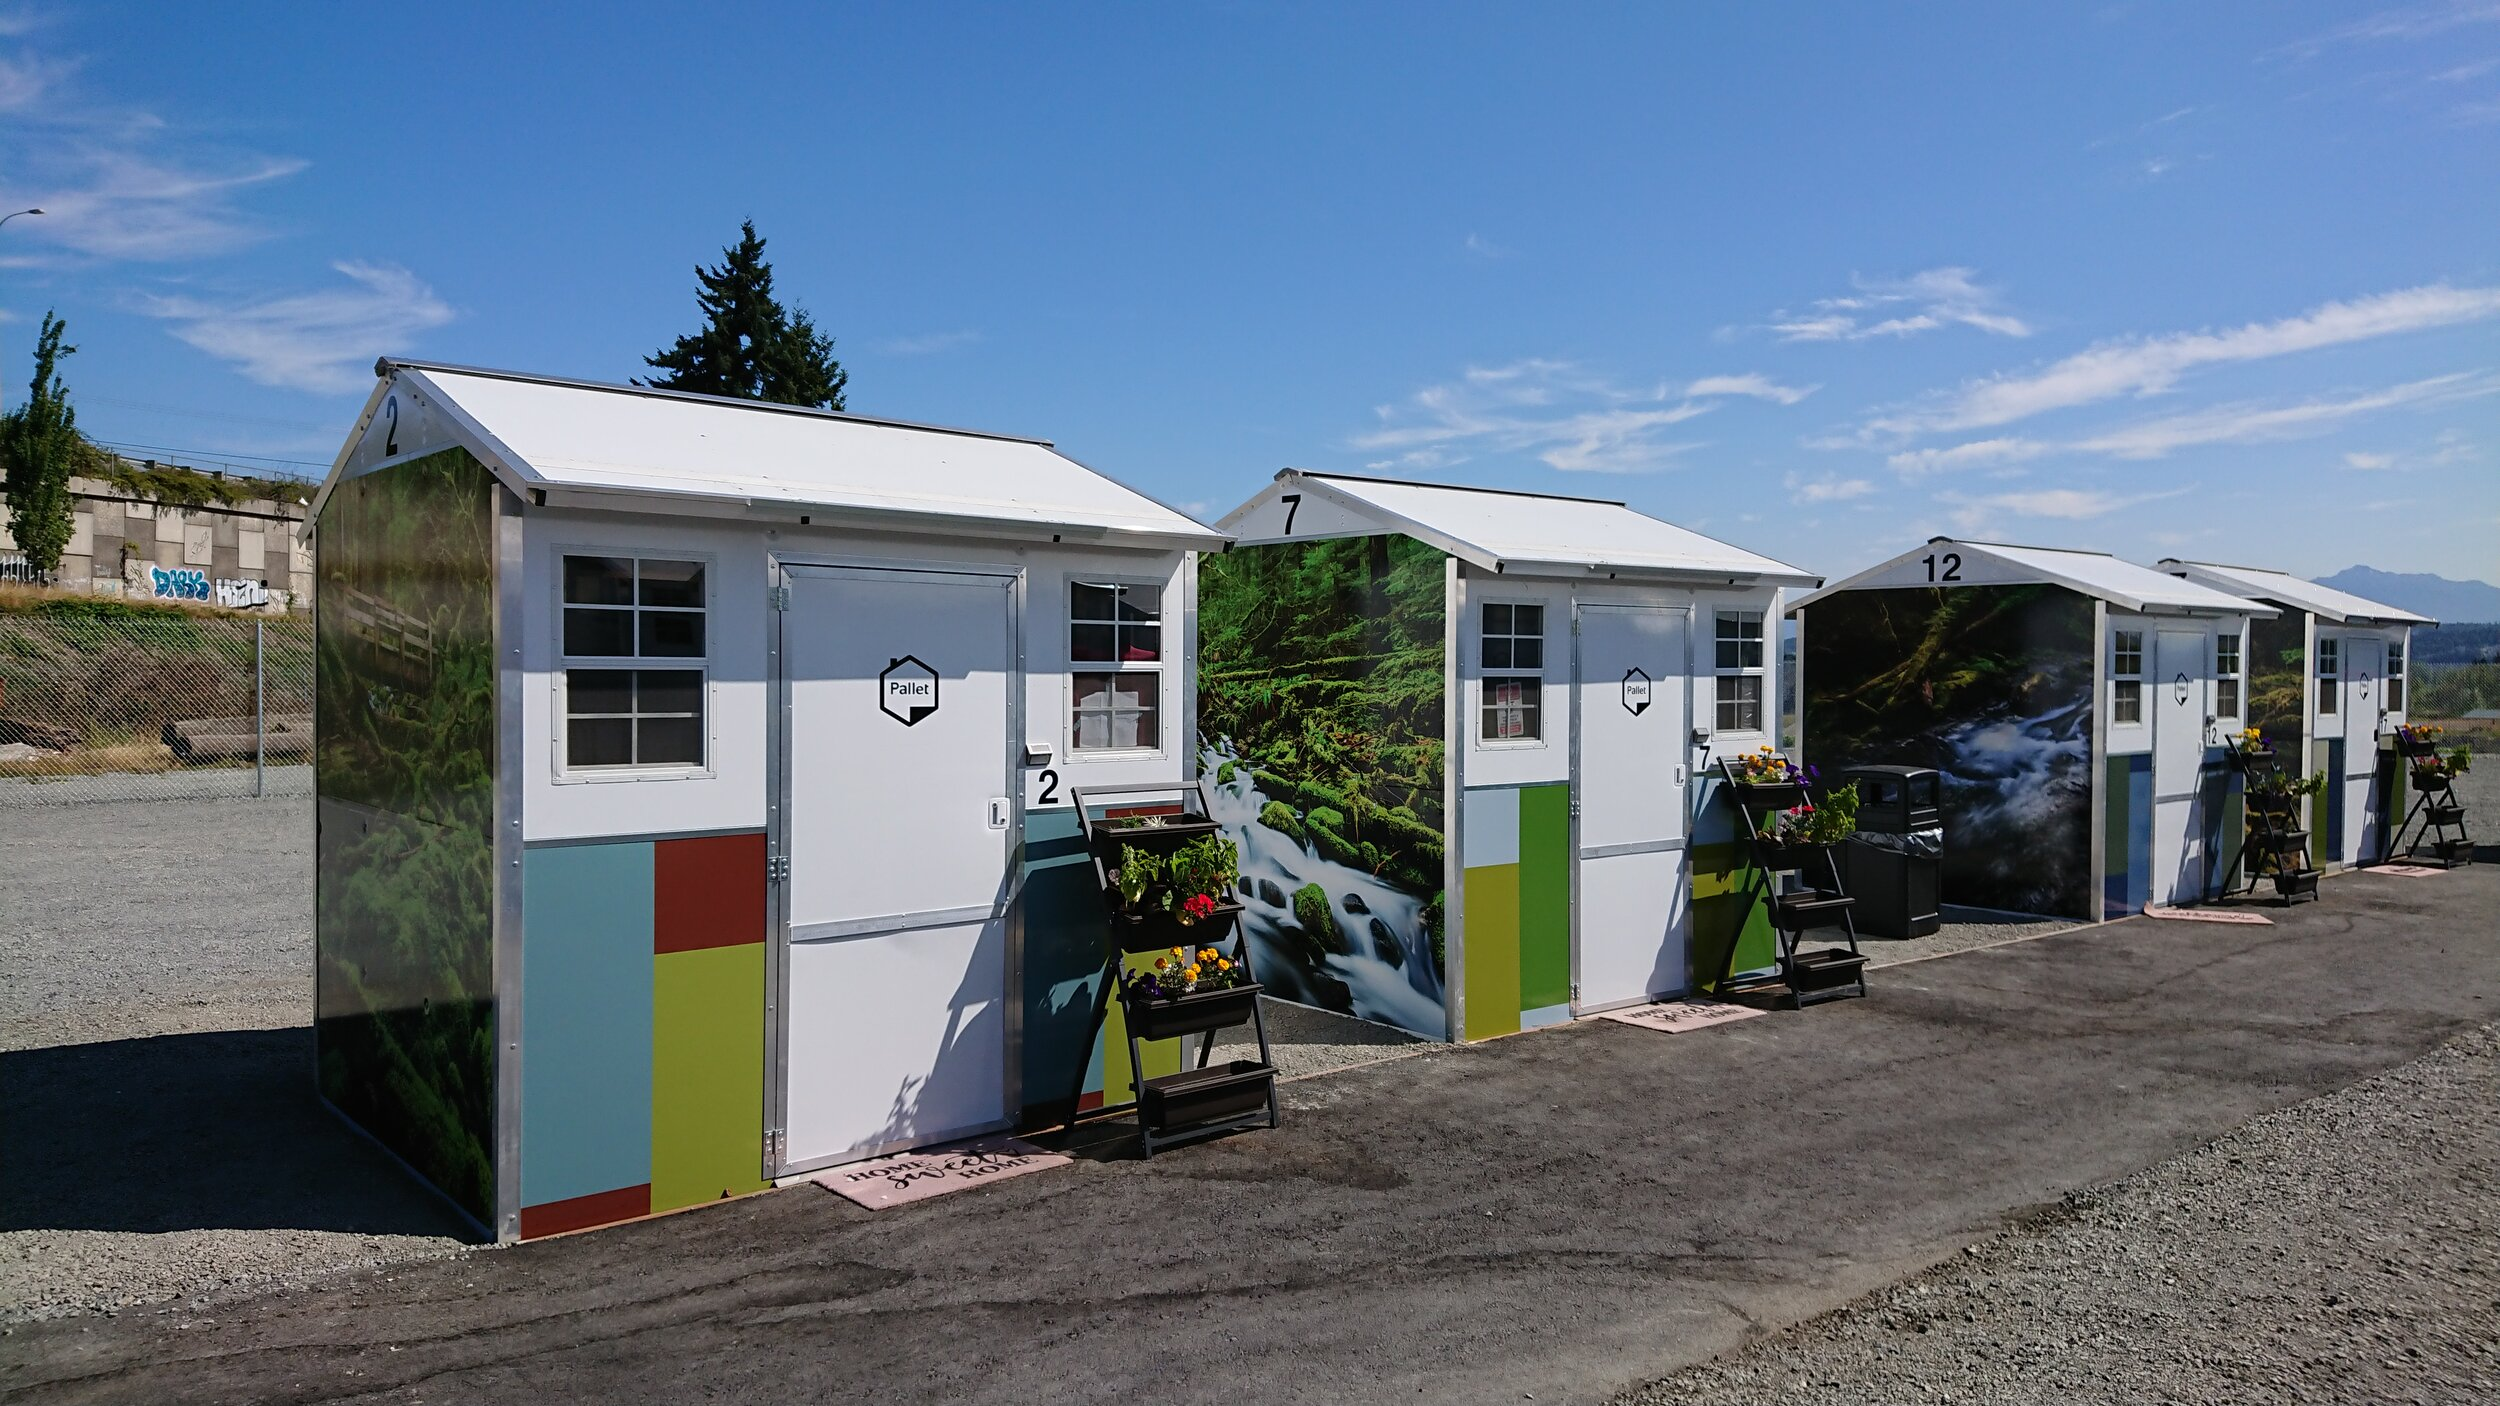 After opening, Everett Gospel Mission decided to spruce up the look of the shelters with scenes from the Pacific Northwest. They hired a local company to complete the vinyl wrapping.